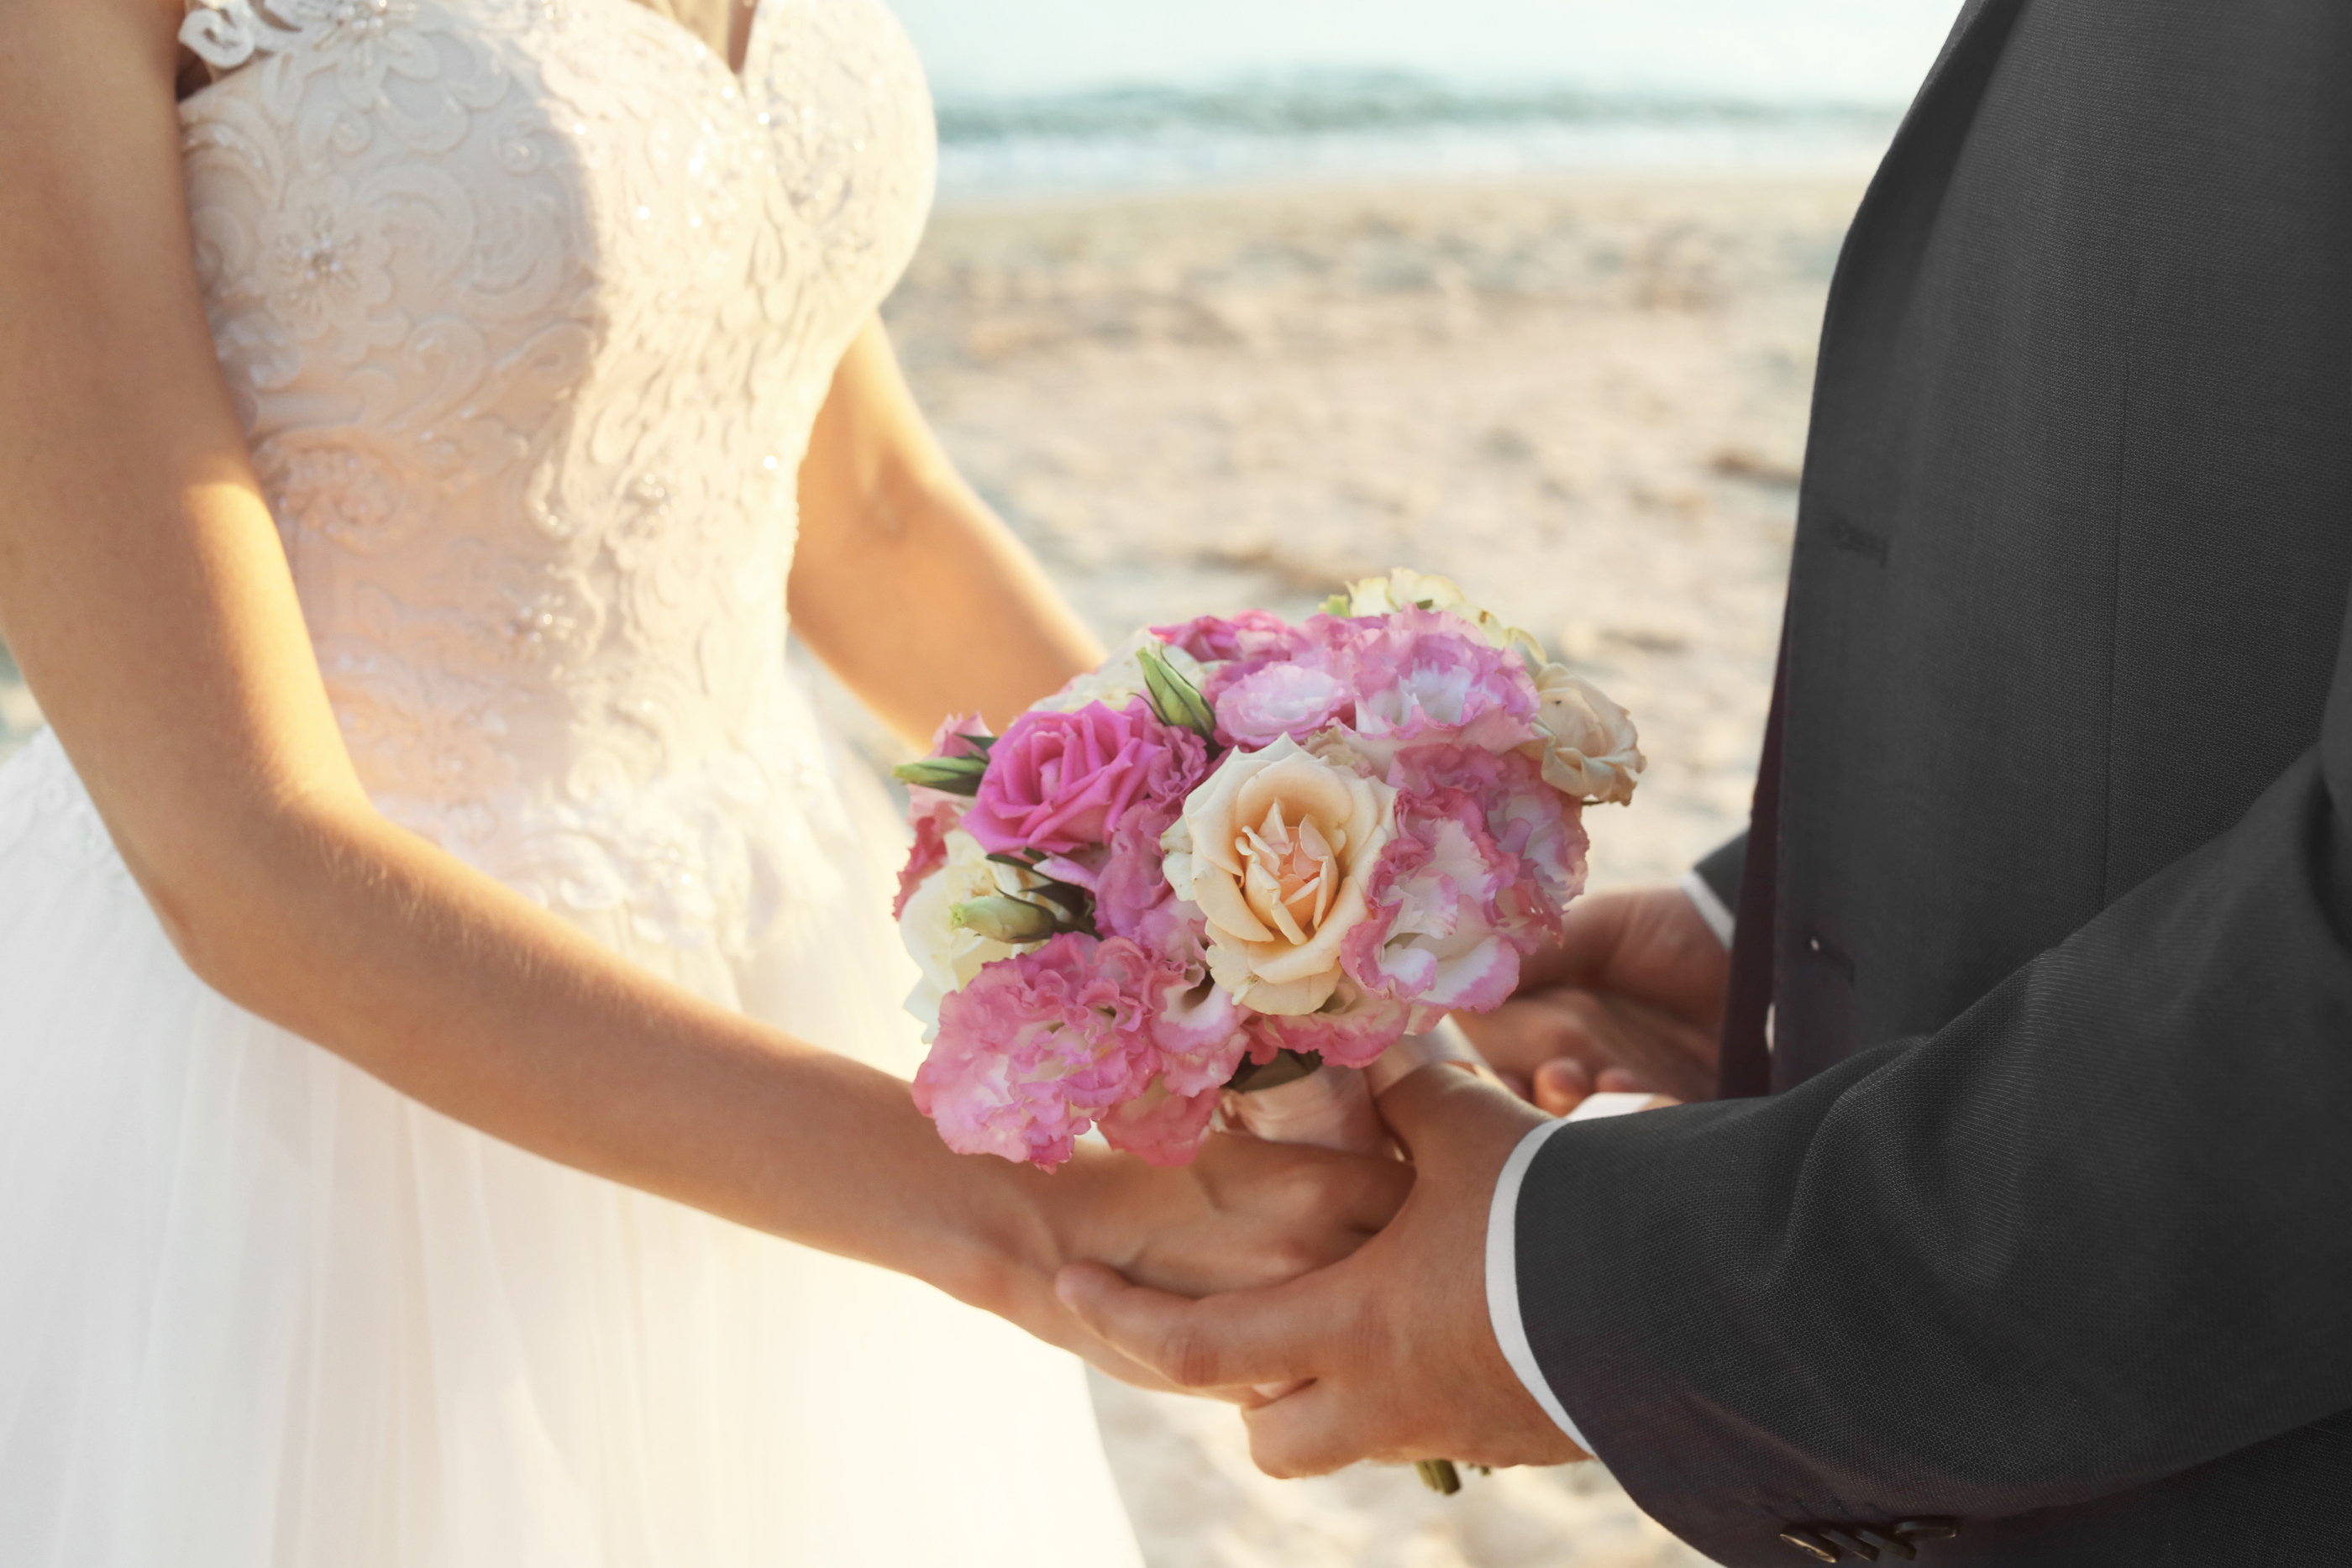 bigstock-Close-Up-View-Of-Wedding-Coupl-